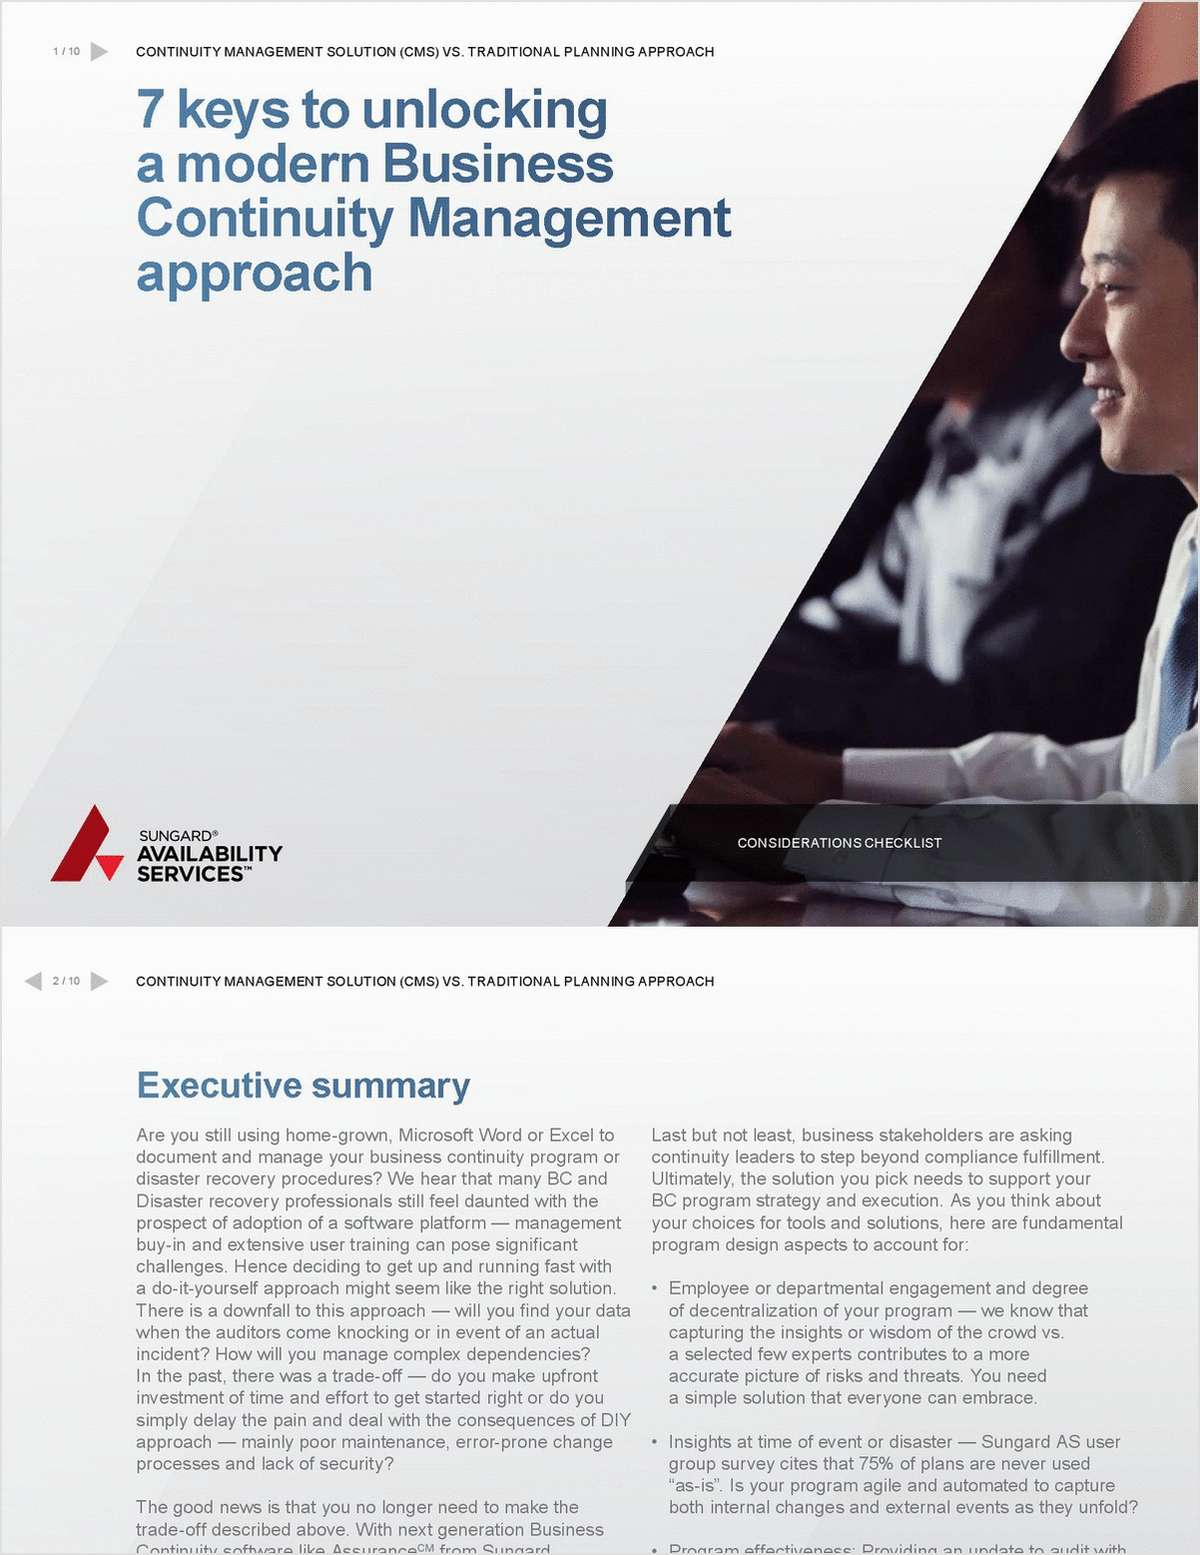 7 Keys to Unlocking a Modern Business Continuity Management Approach